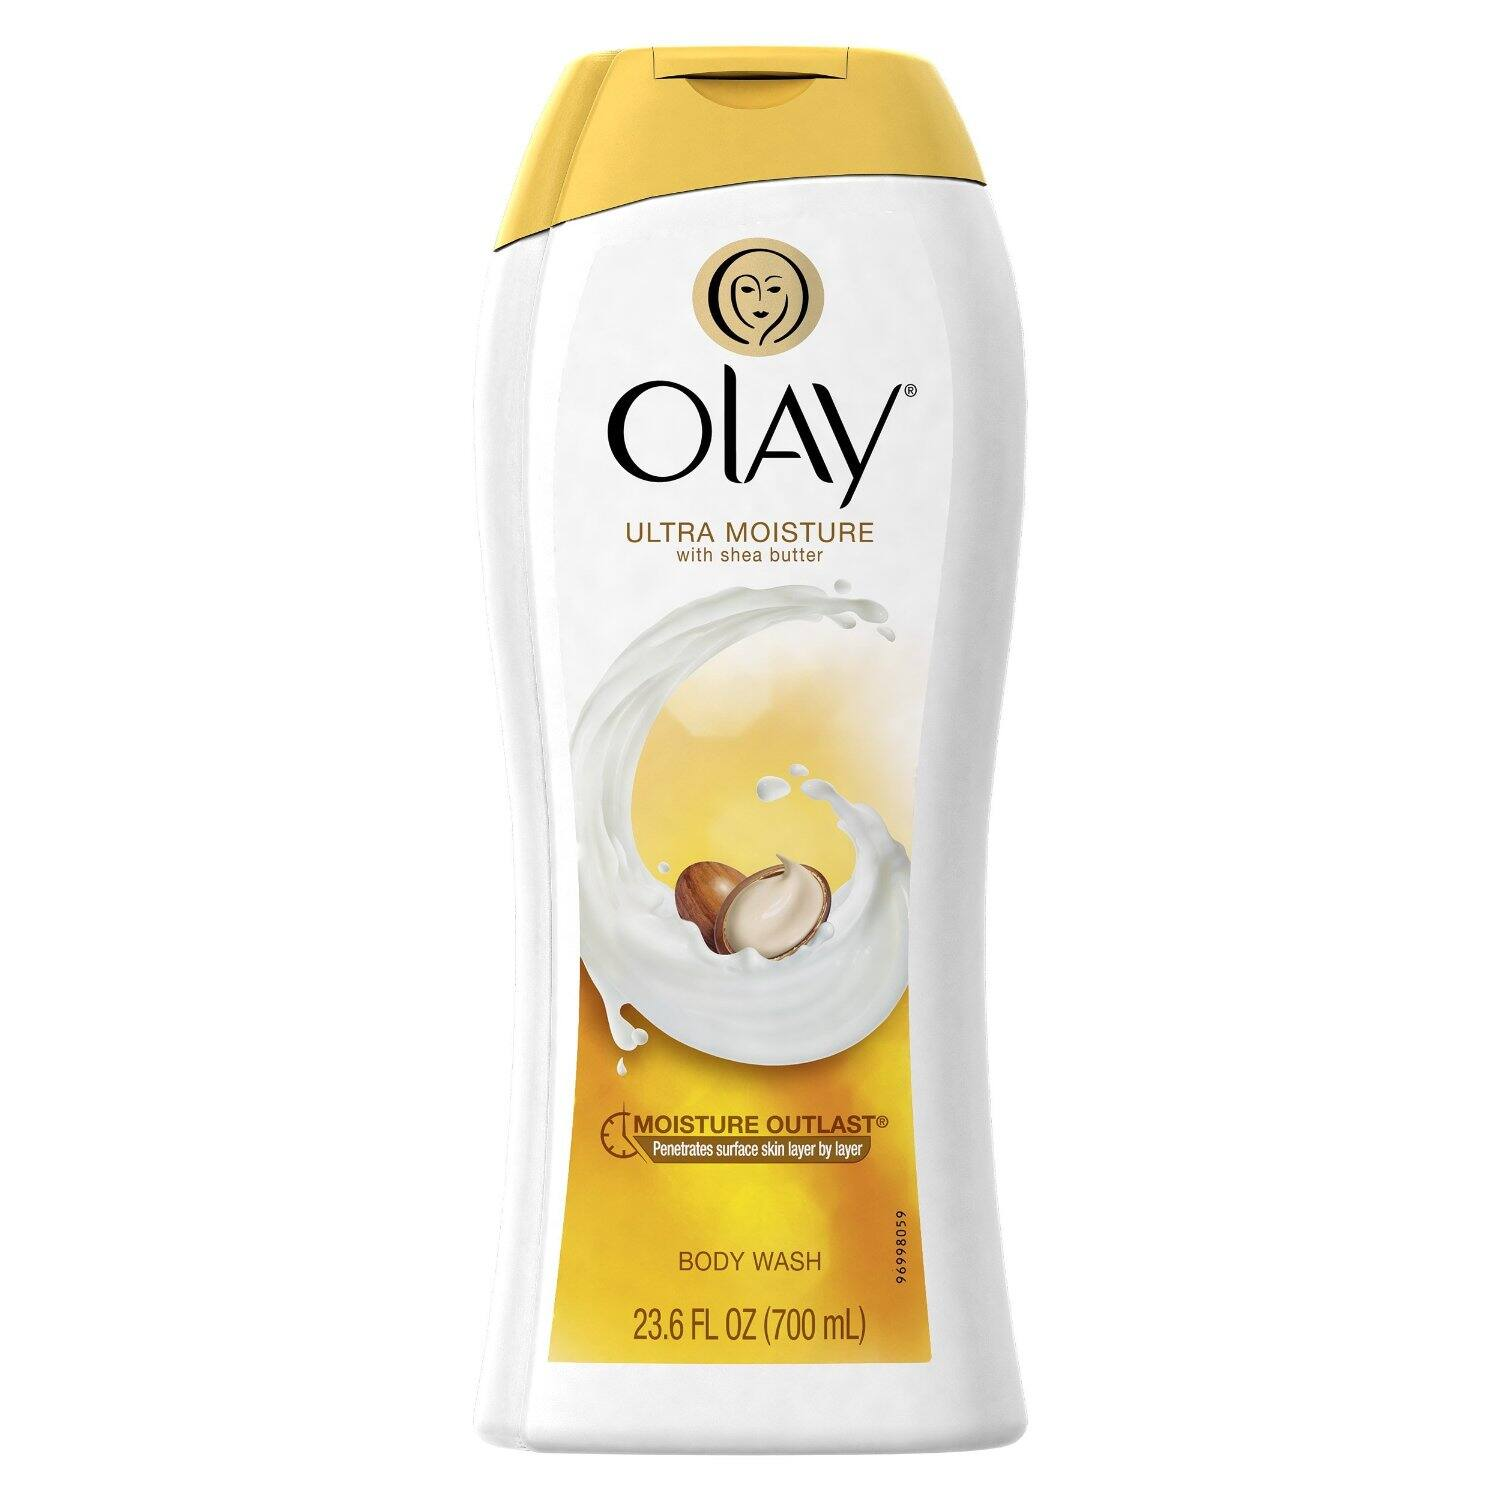 Olay Ultra Moisture Moisturizing Body Wash with Shea Butter 23.6 Oz: $3.72 (or $3.22) + FS @ Amazon S&S